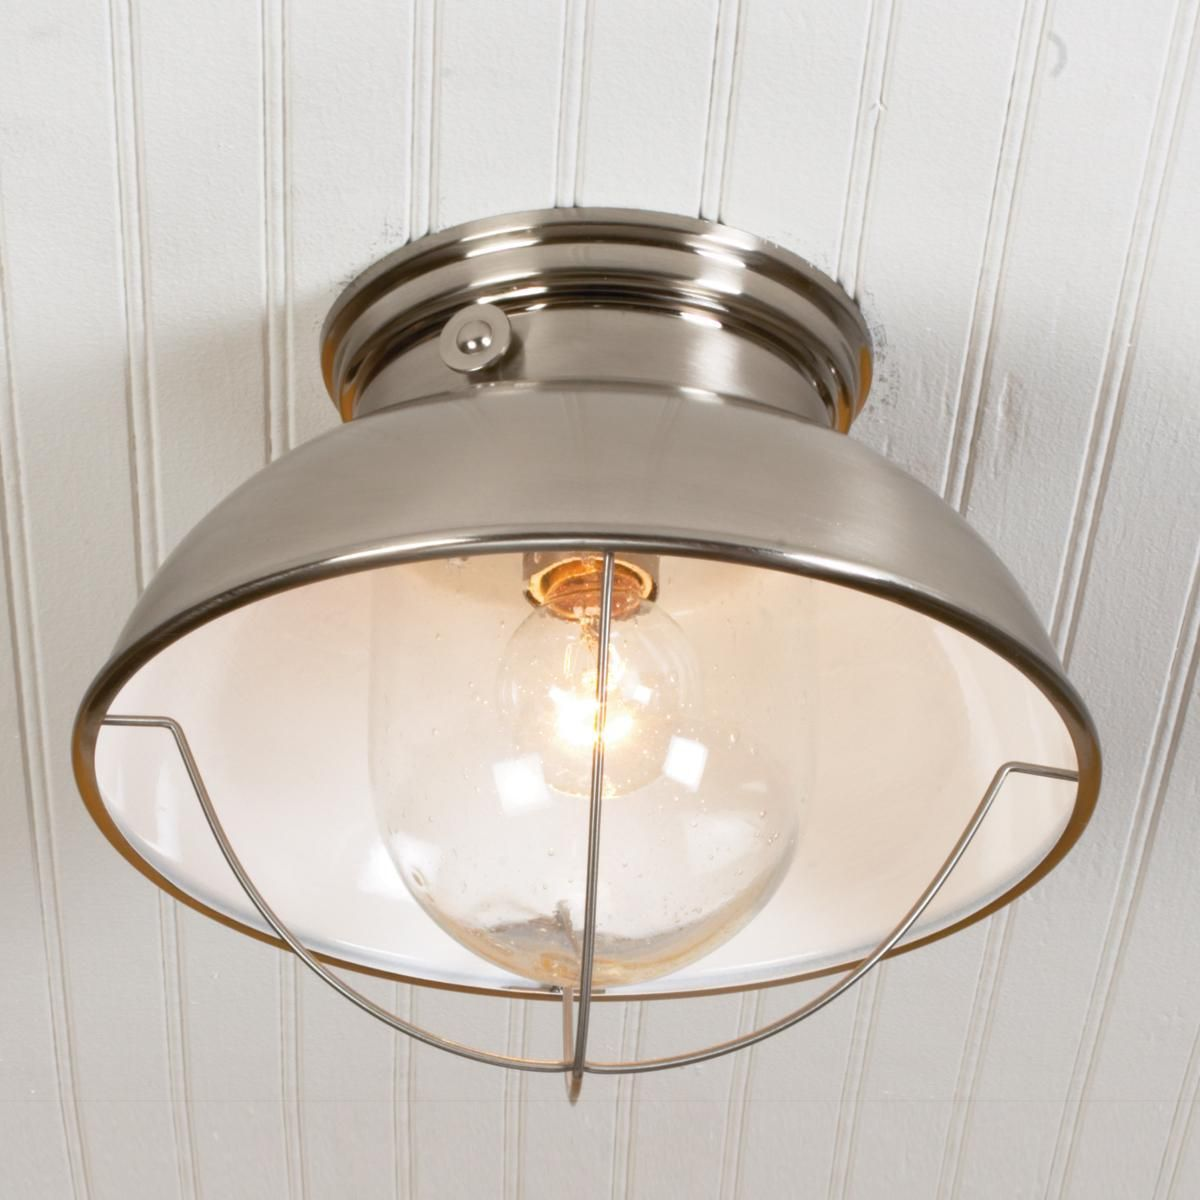 Stainless Steel Kitchen Light Nantucket Ceiling Light Home Decorating Kitchen